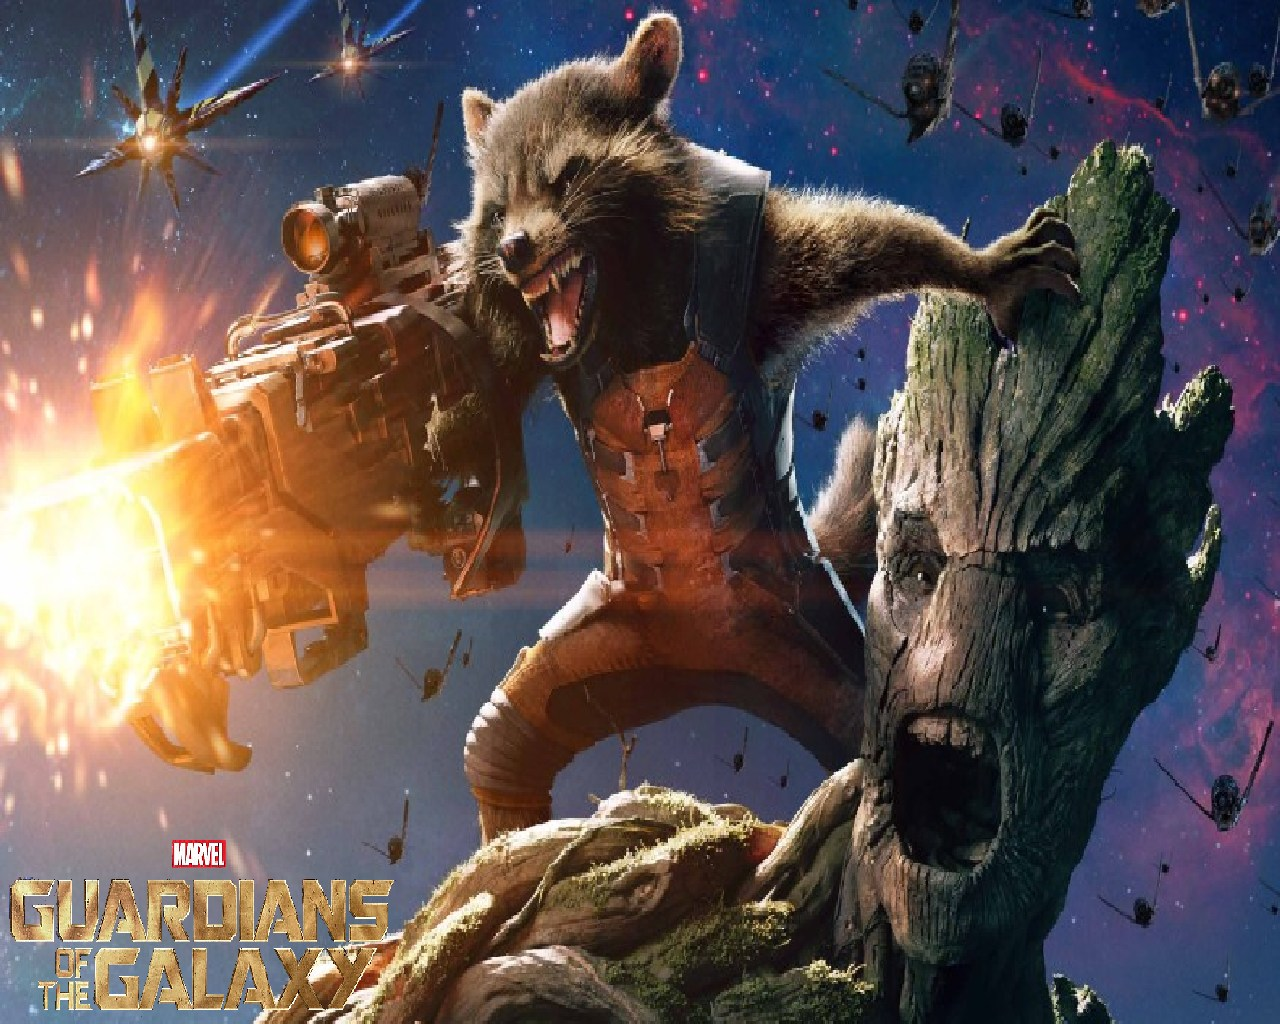 Guardians of the Galaxy wallpaper: Cranky Critic® Movie Wallpaper ...